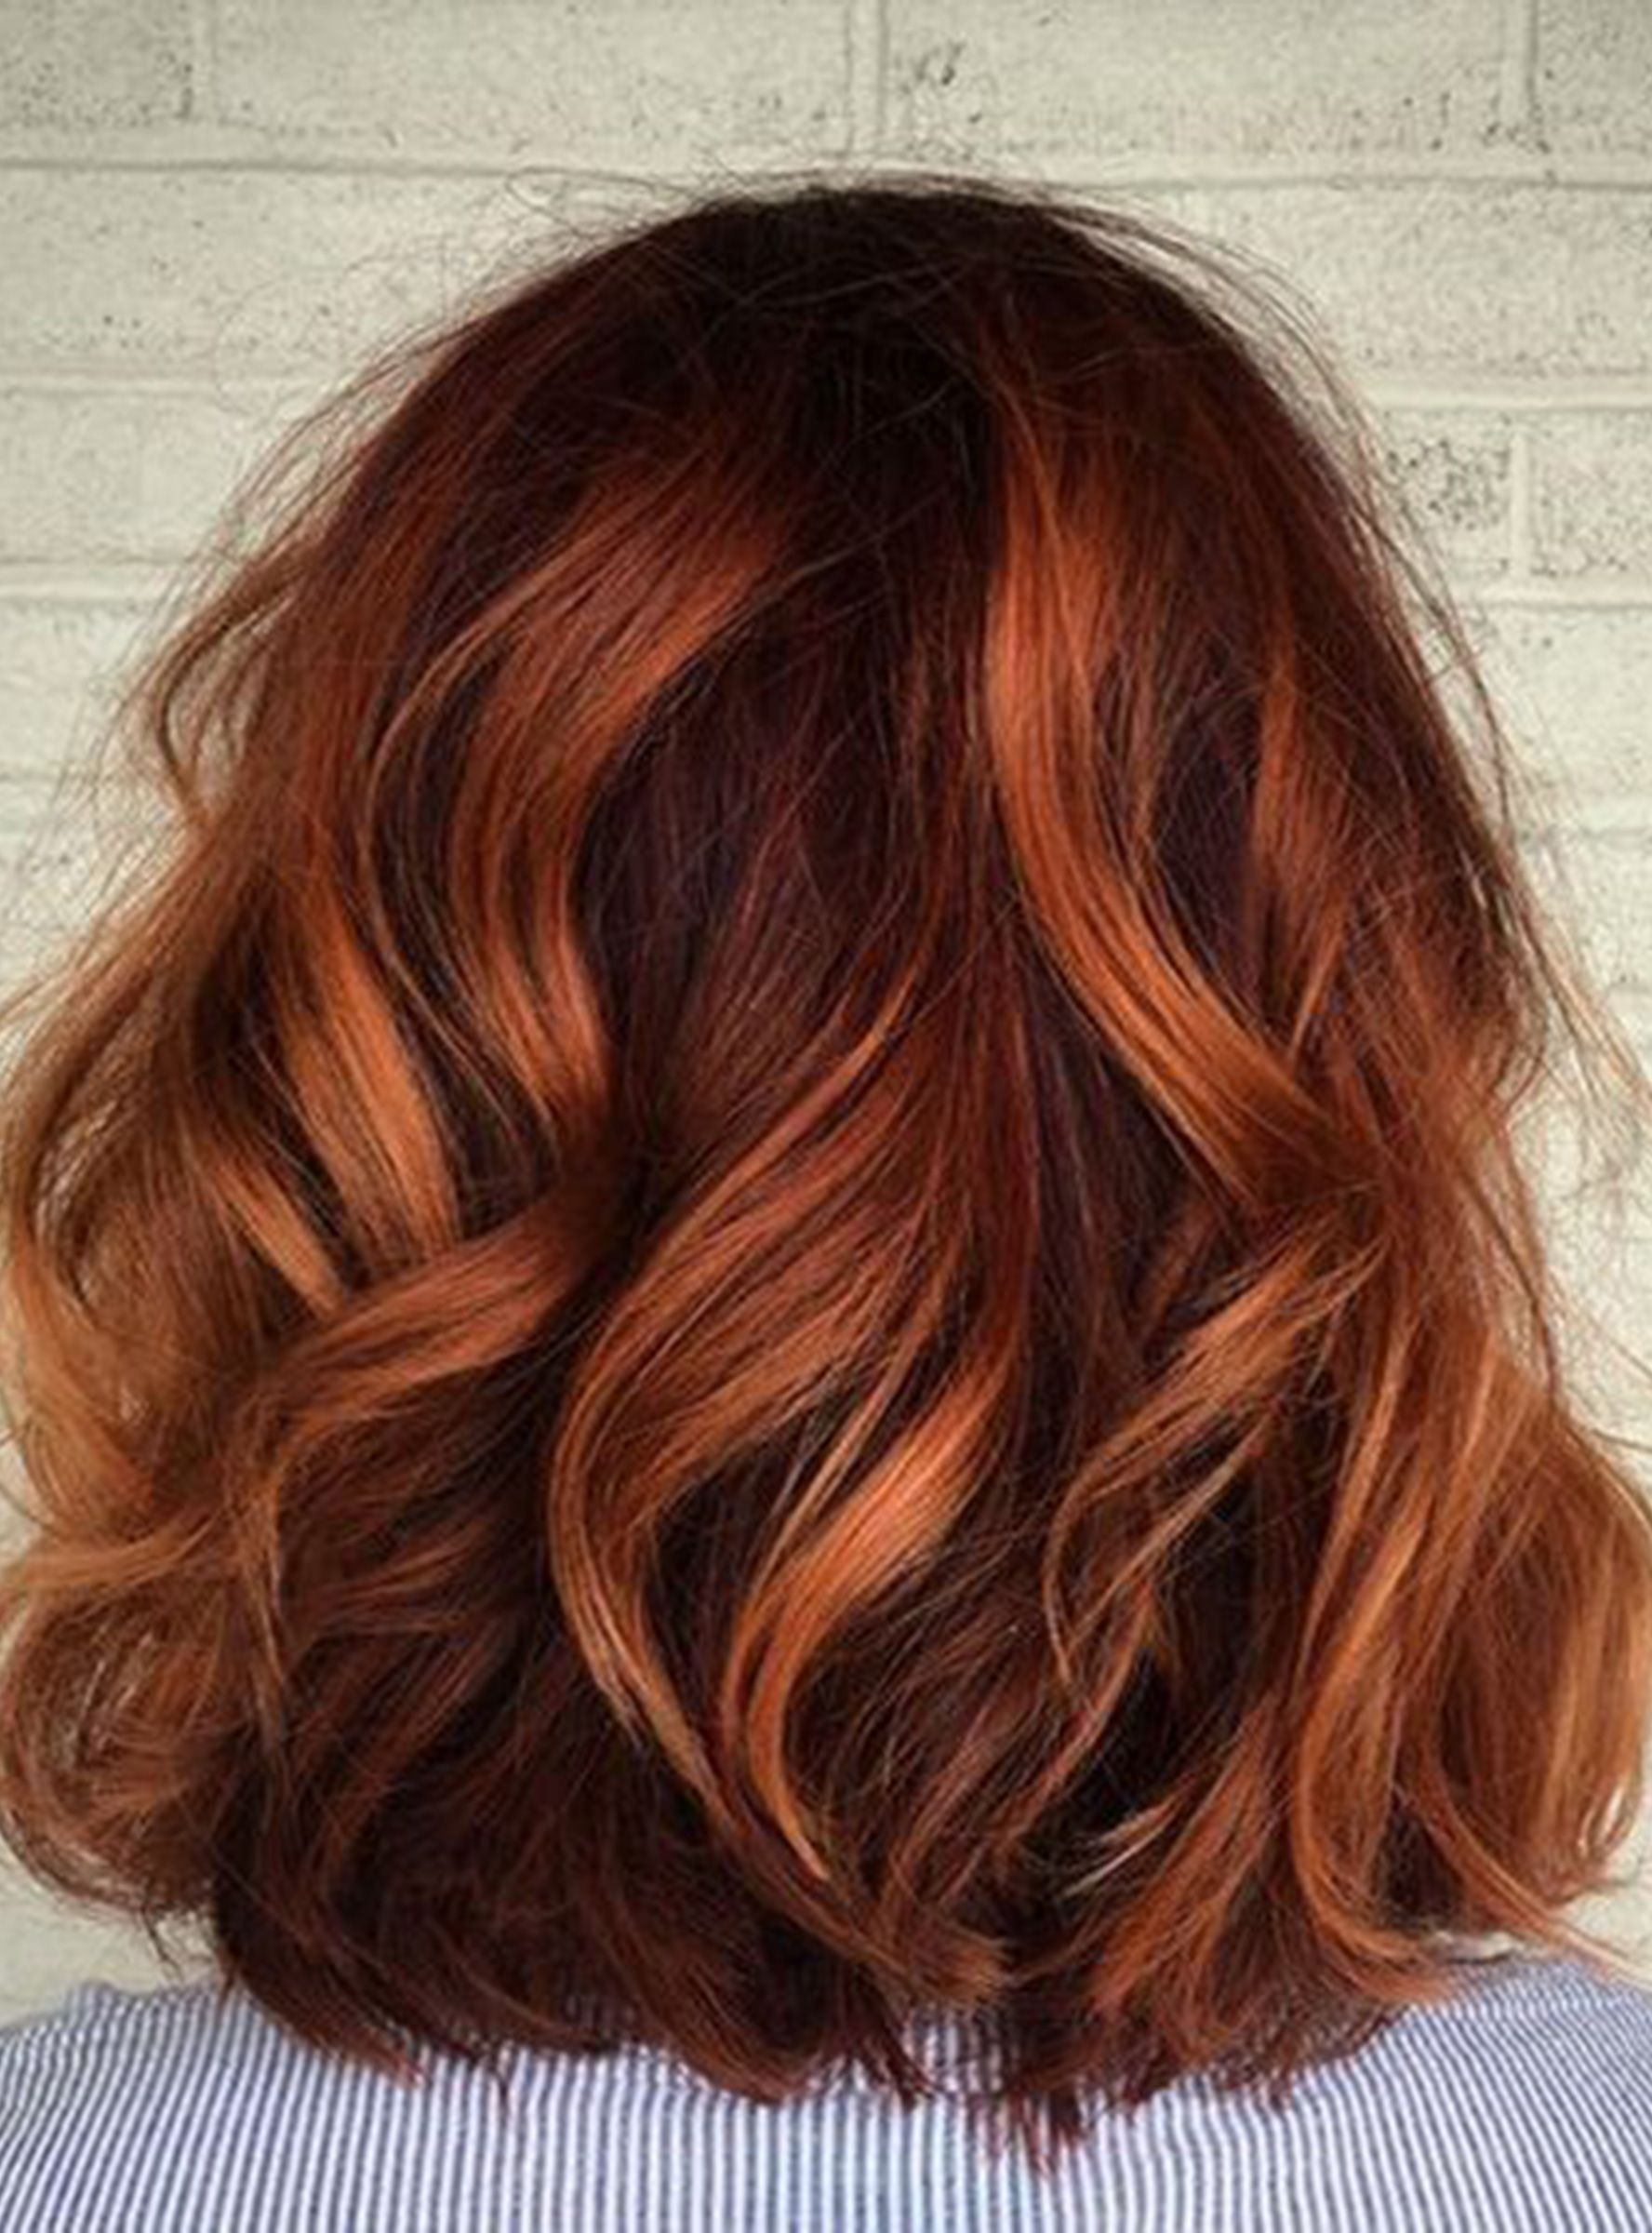 This London Hair Color Trend Makes Growing Out Highlights So Easy